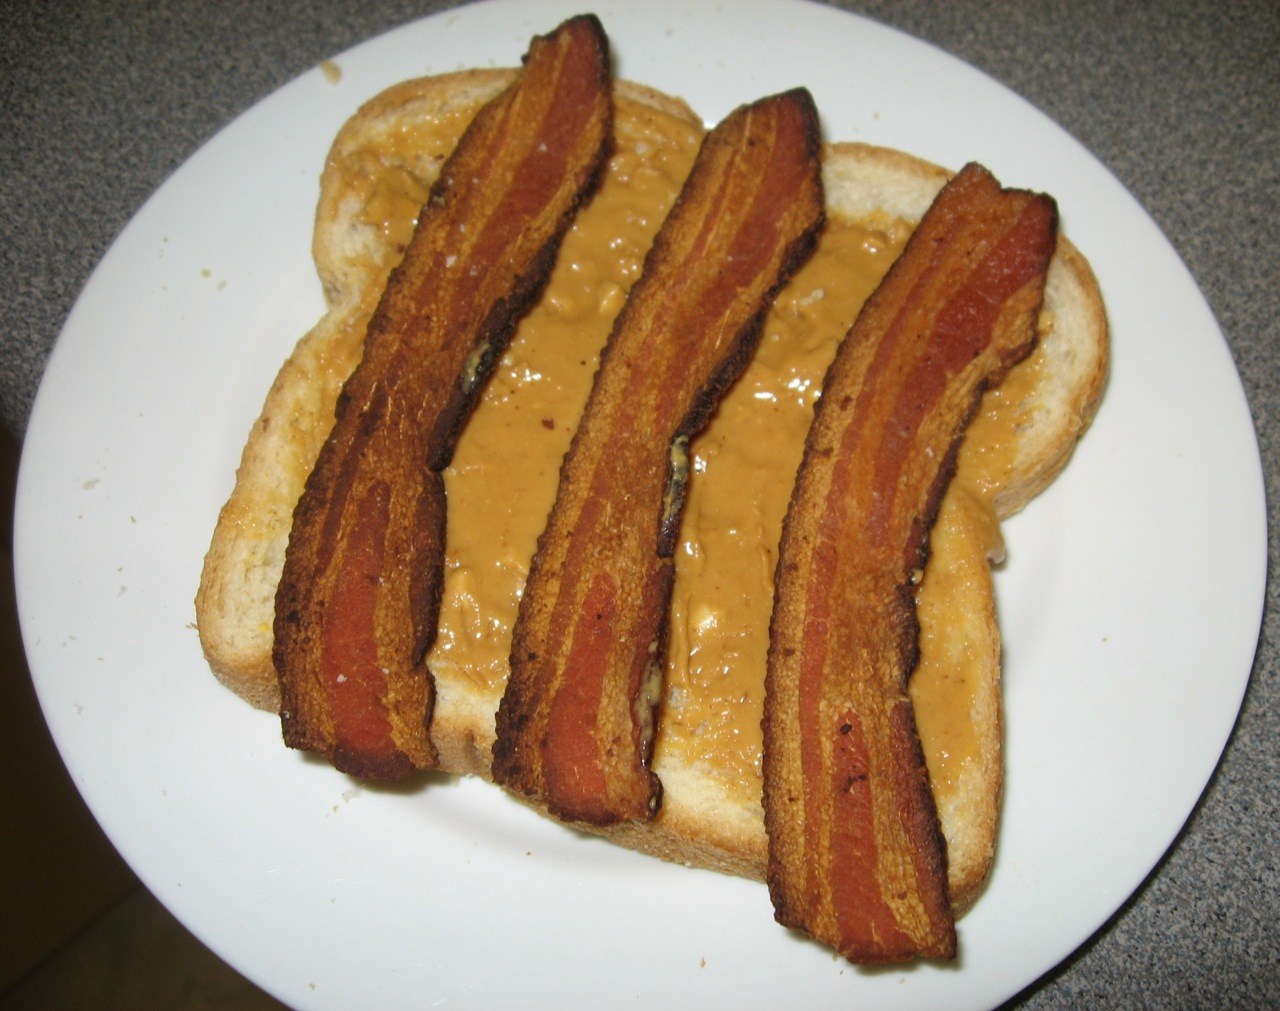 Peanut Butter and Bacon Sandwich, from wikimedia.org/